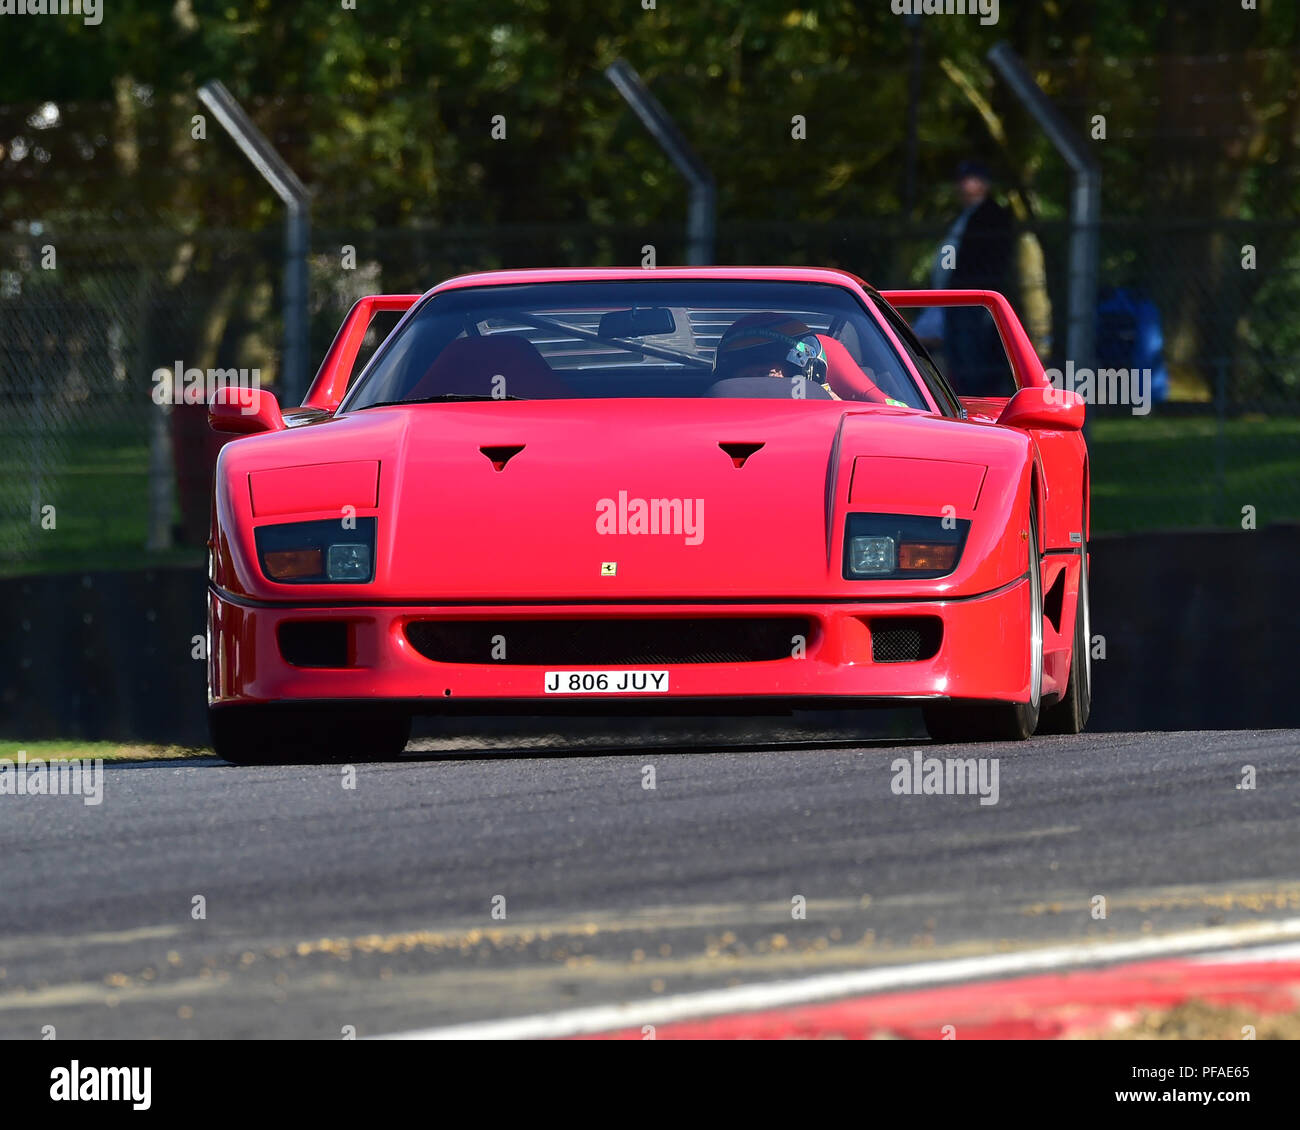 Ferrari F40, Historic Abarth Demonstration, Special Italian Car demo, Festival Italia, Brands Hatch, Kent, England, August 19th, 2018. - Stock Image